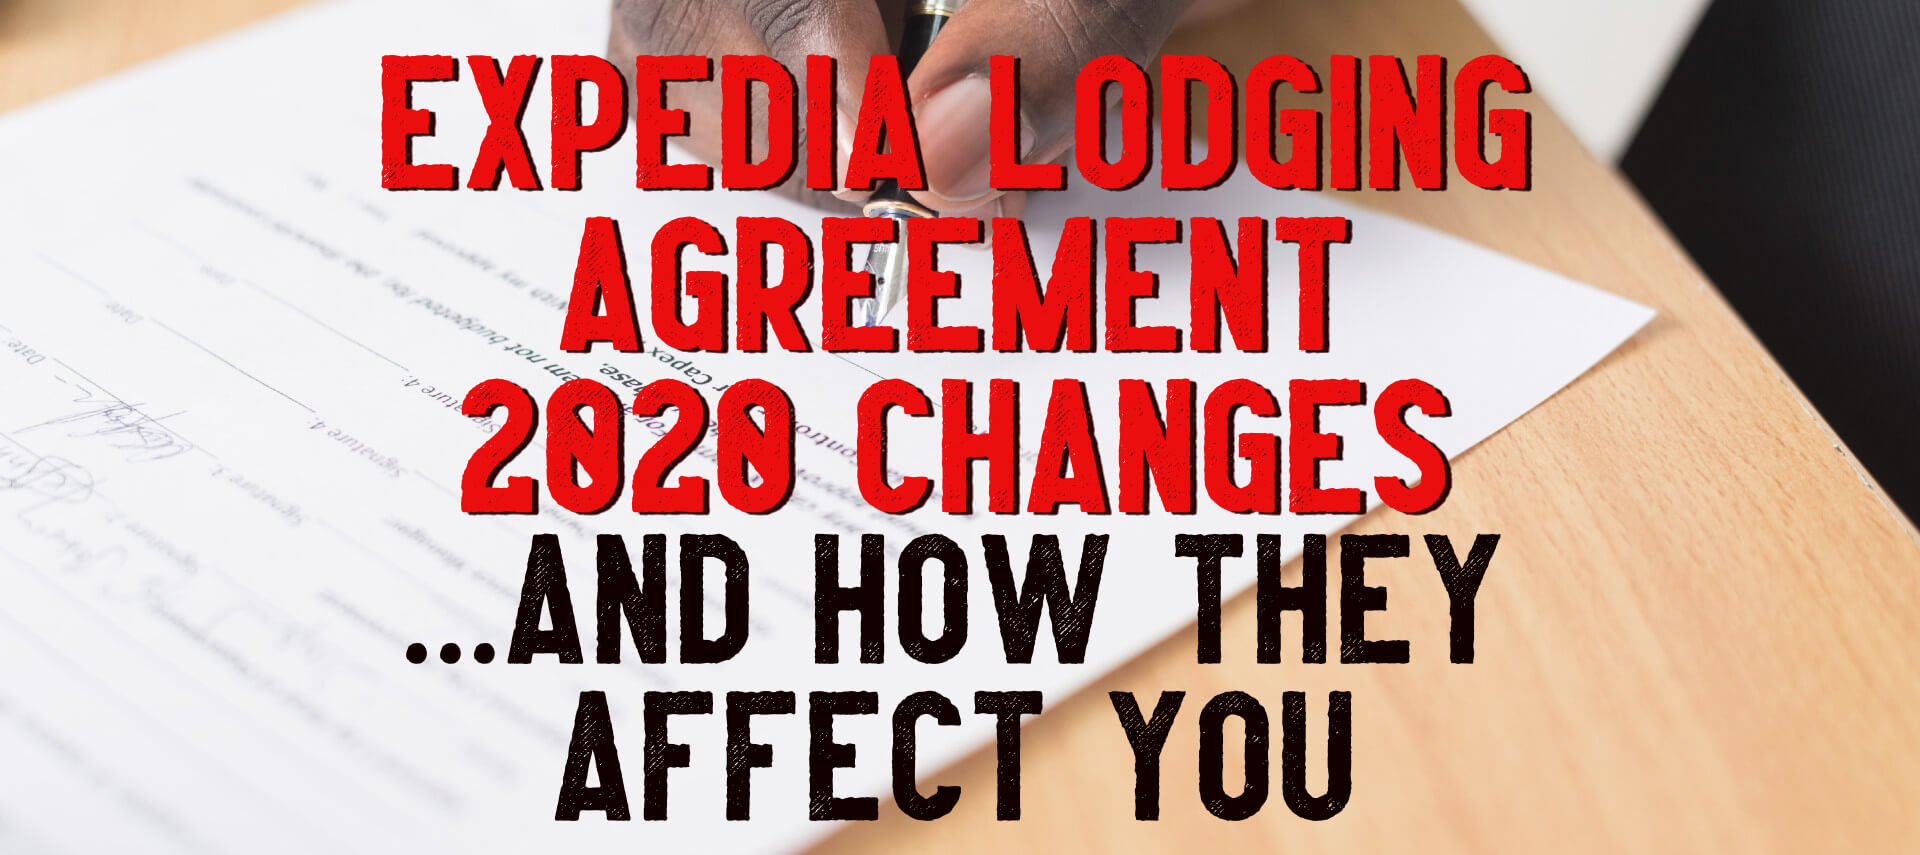 Man's hand with pen signing contract - Expedia Lodging Agreement Changes and How They Affect You